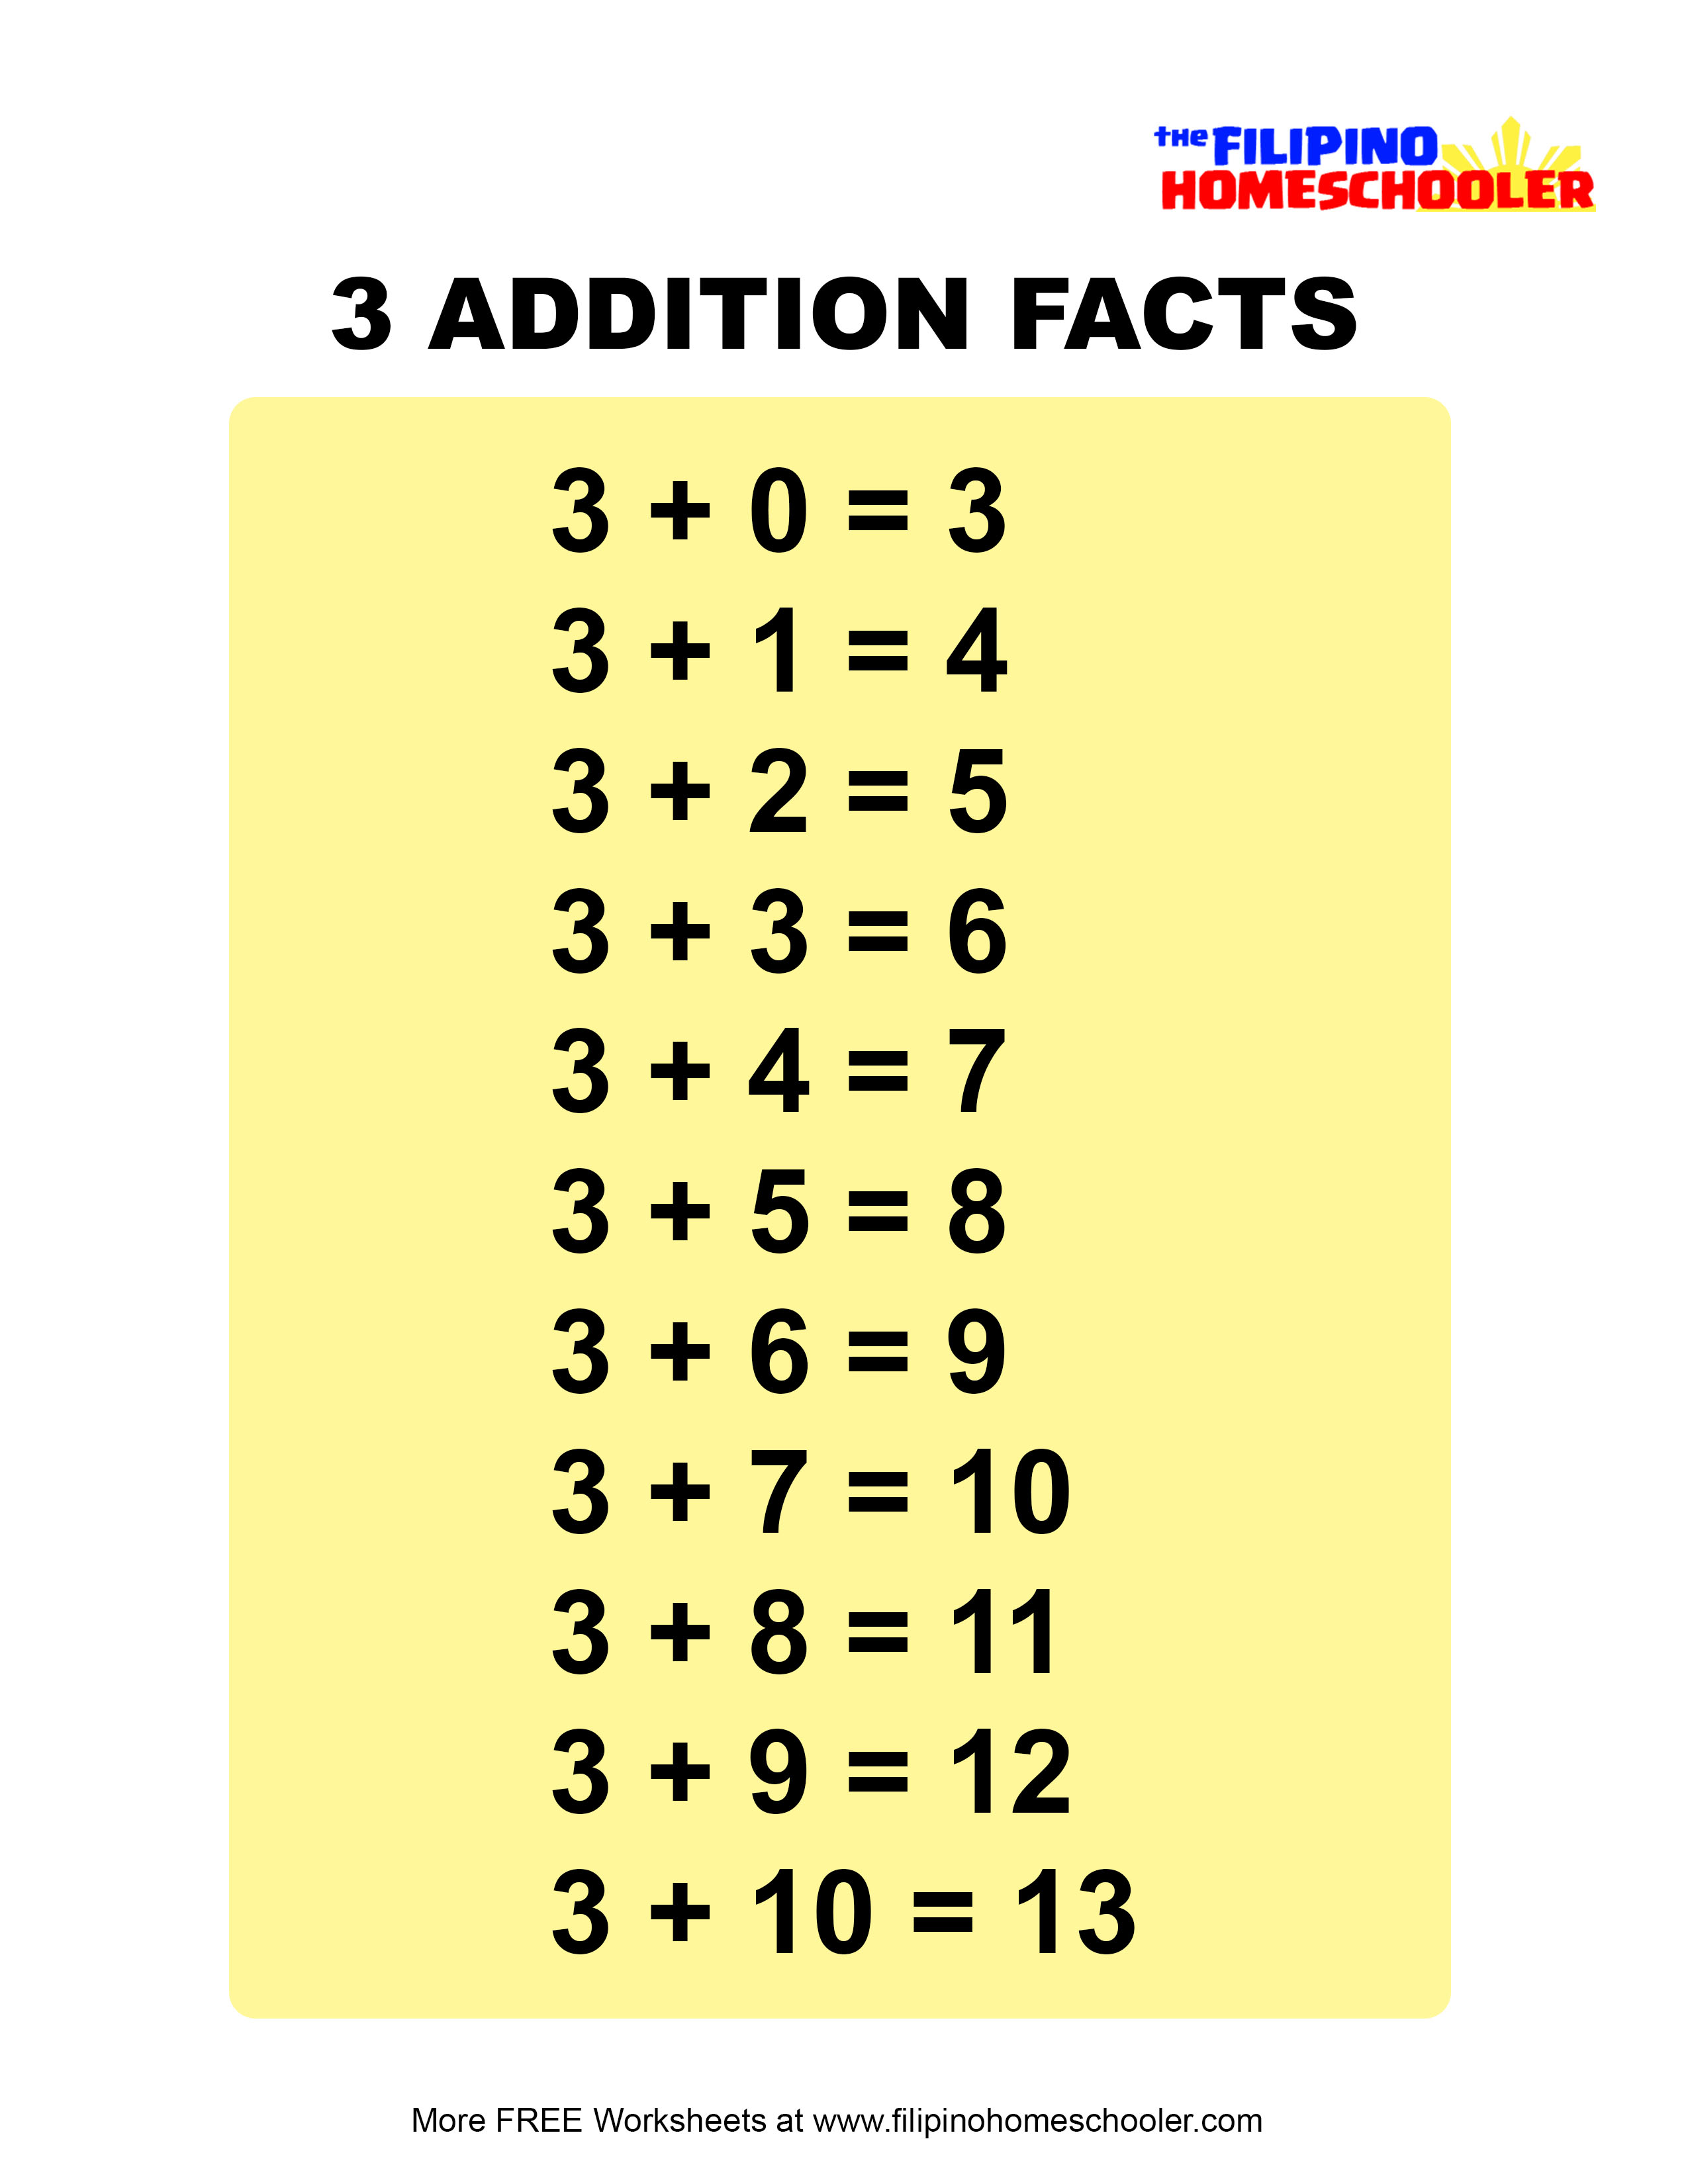 facts about the number 3